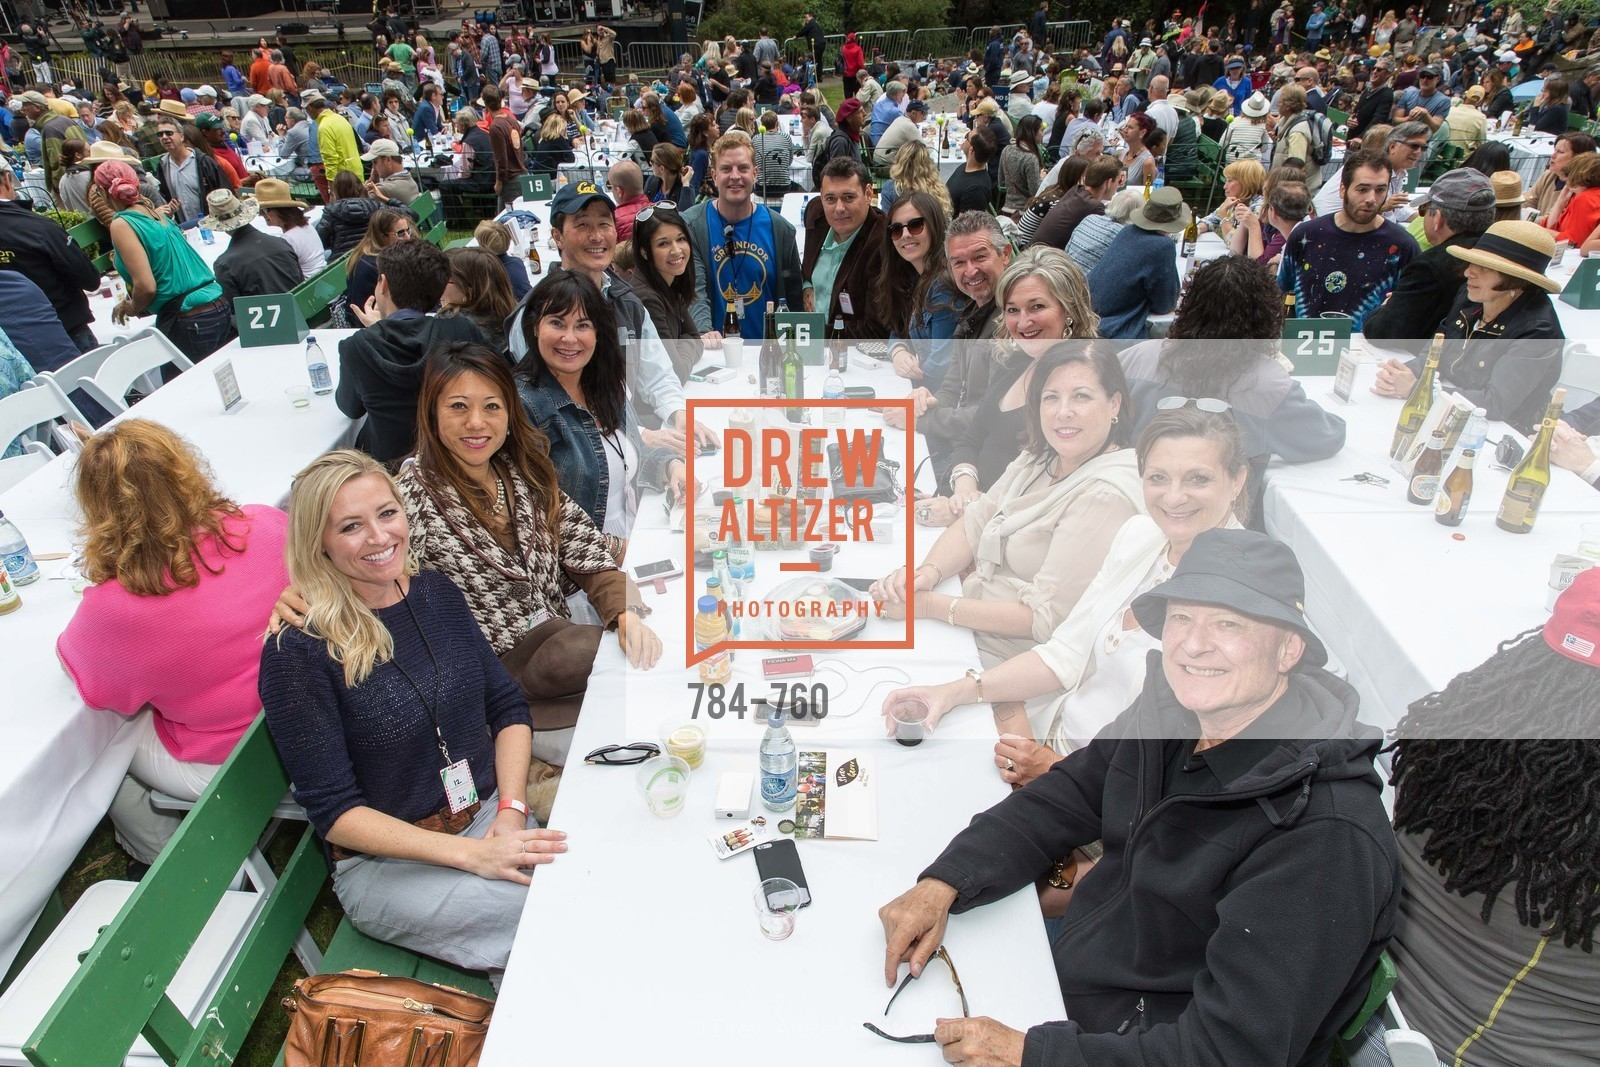 Extras, The Big Picnic! A Benefit & Concert for STERN GROVE FESTIVAL, June 14th, 2015, Photo,Drew Altizer, Drew Altizer Photography, full-service agency, private events, San Francisco photographer, photographer california